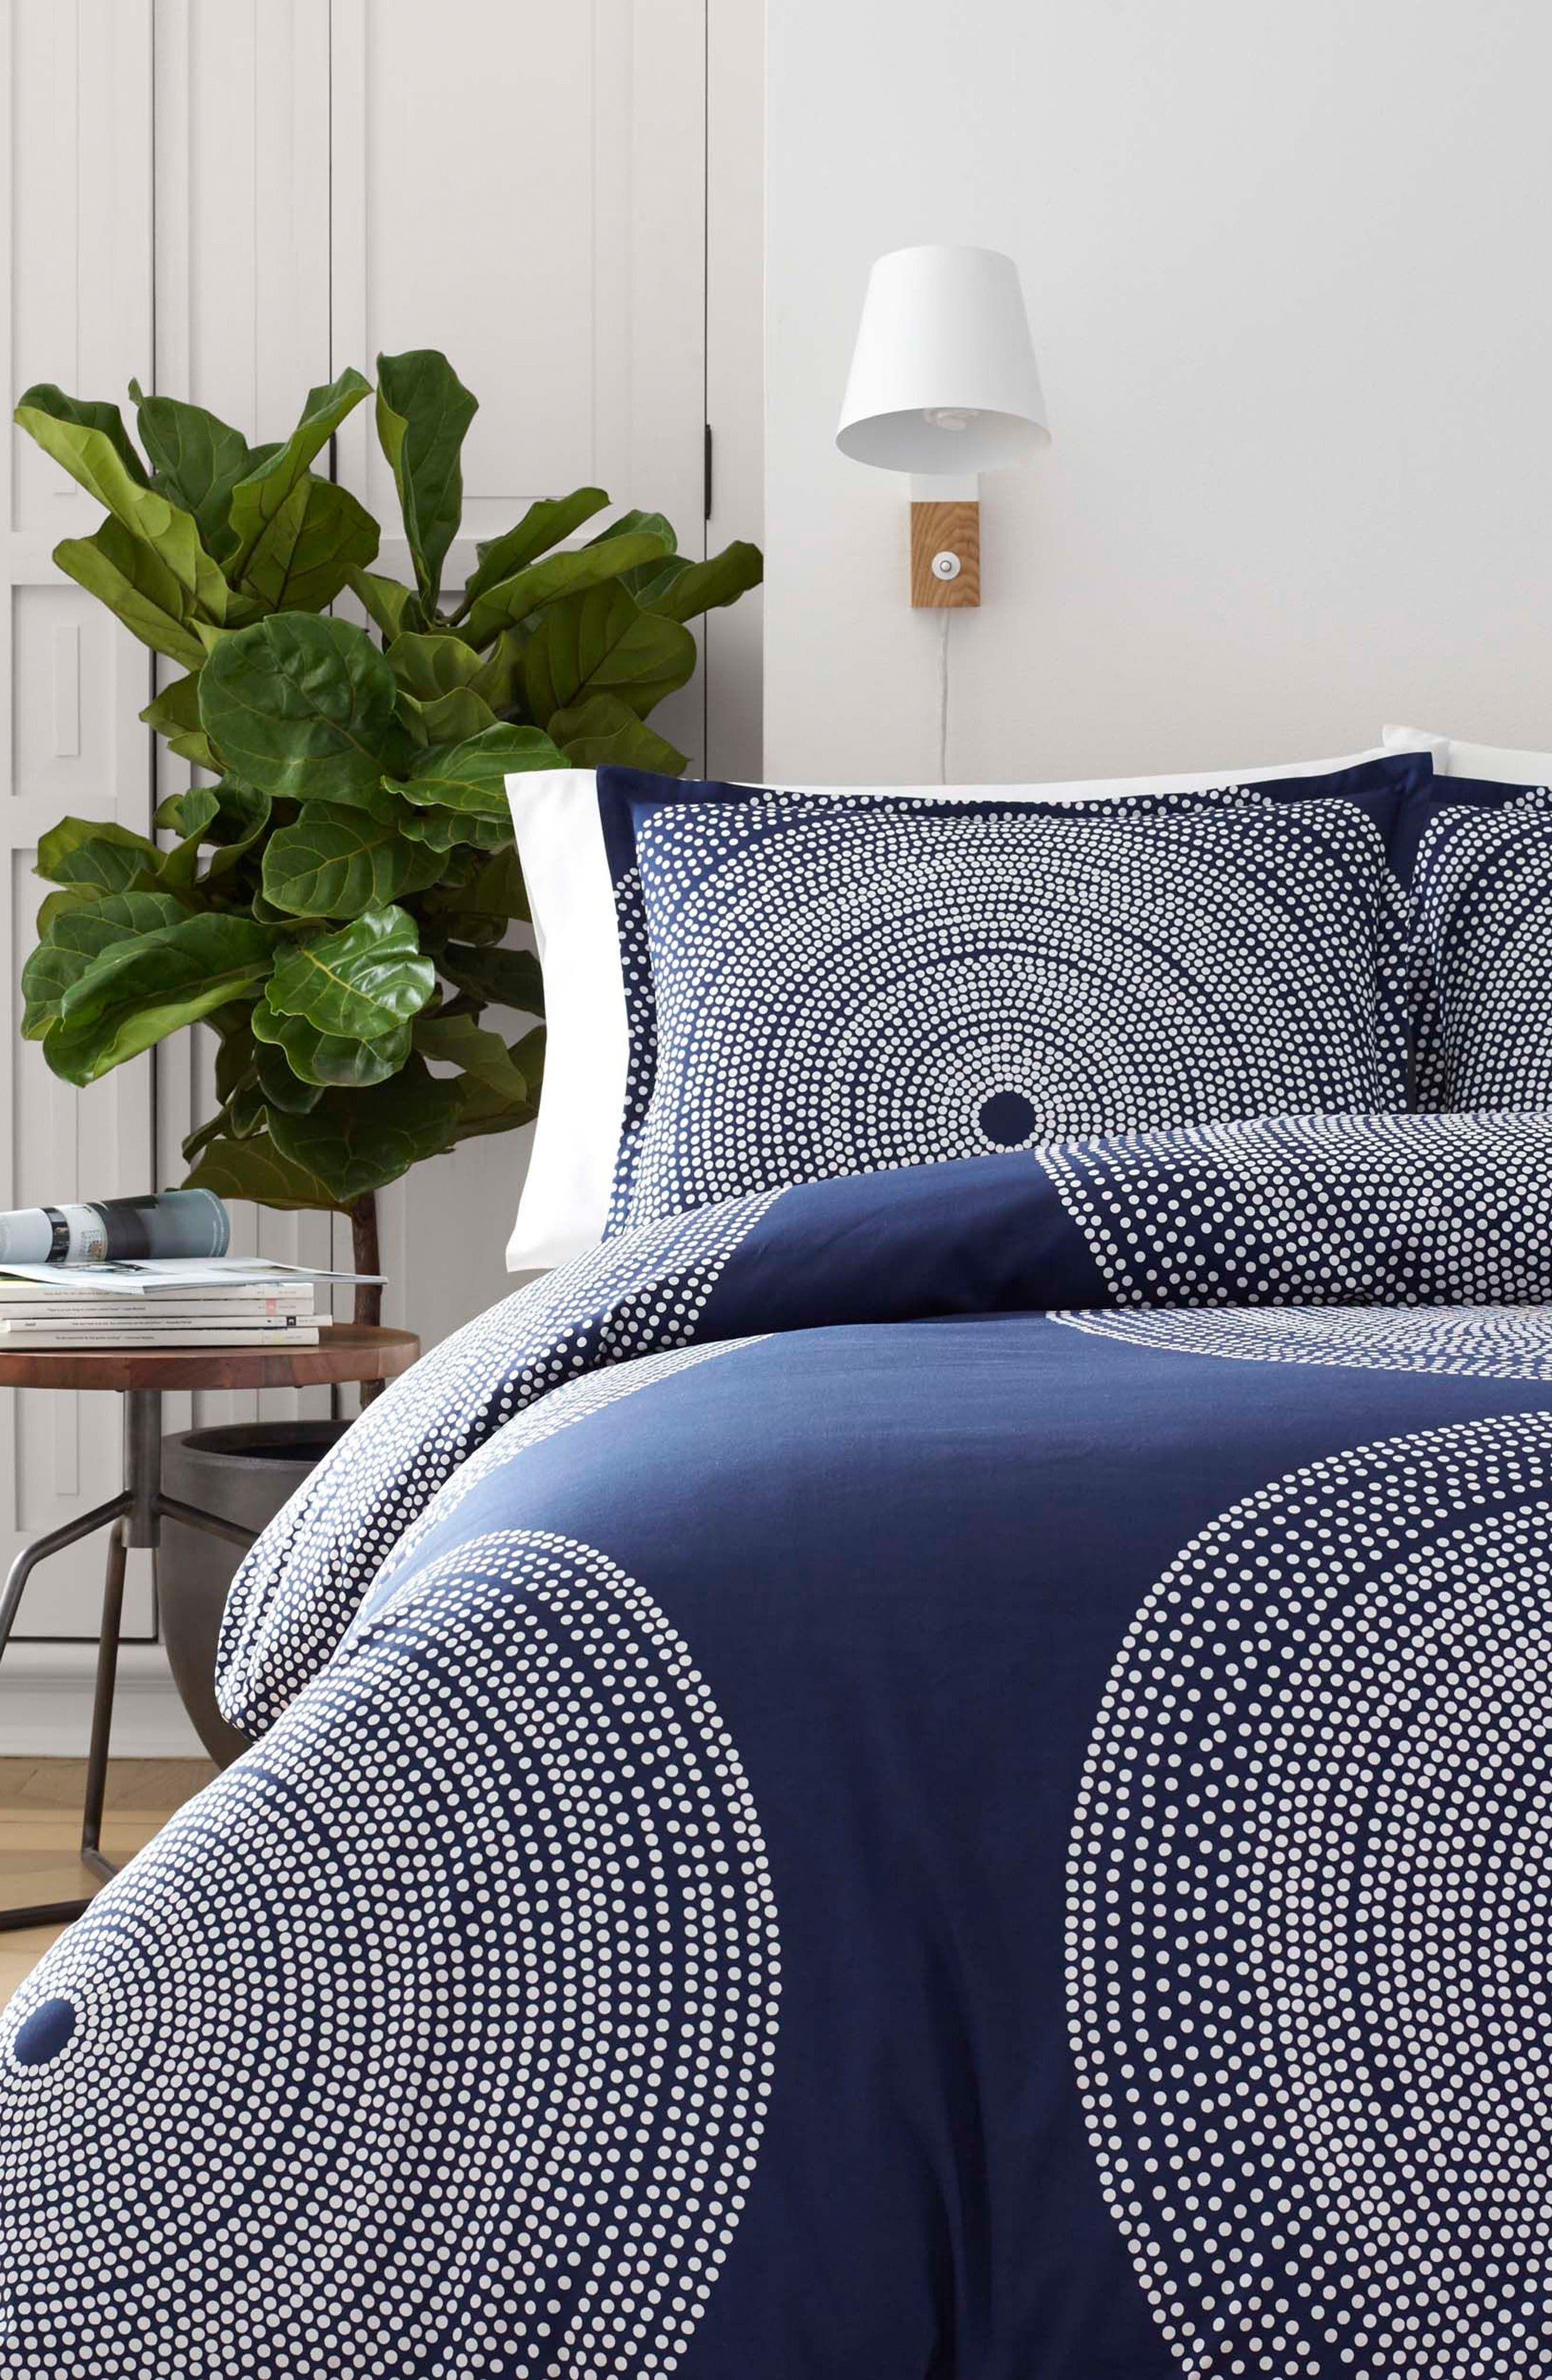 Alternate Image 1 Selected - Marimekko Fokus Comforter & Sham Set